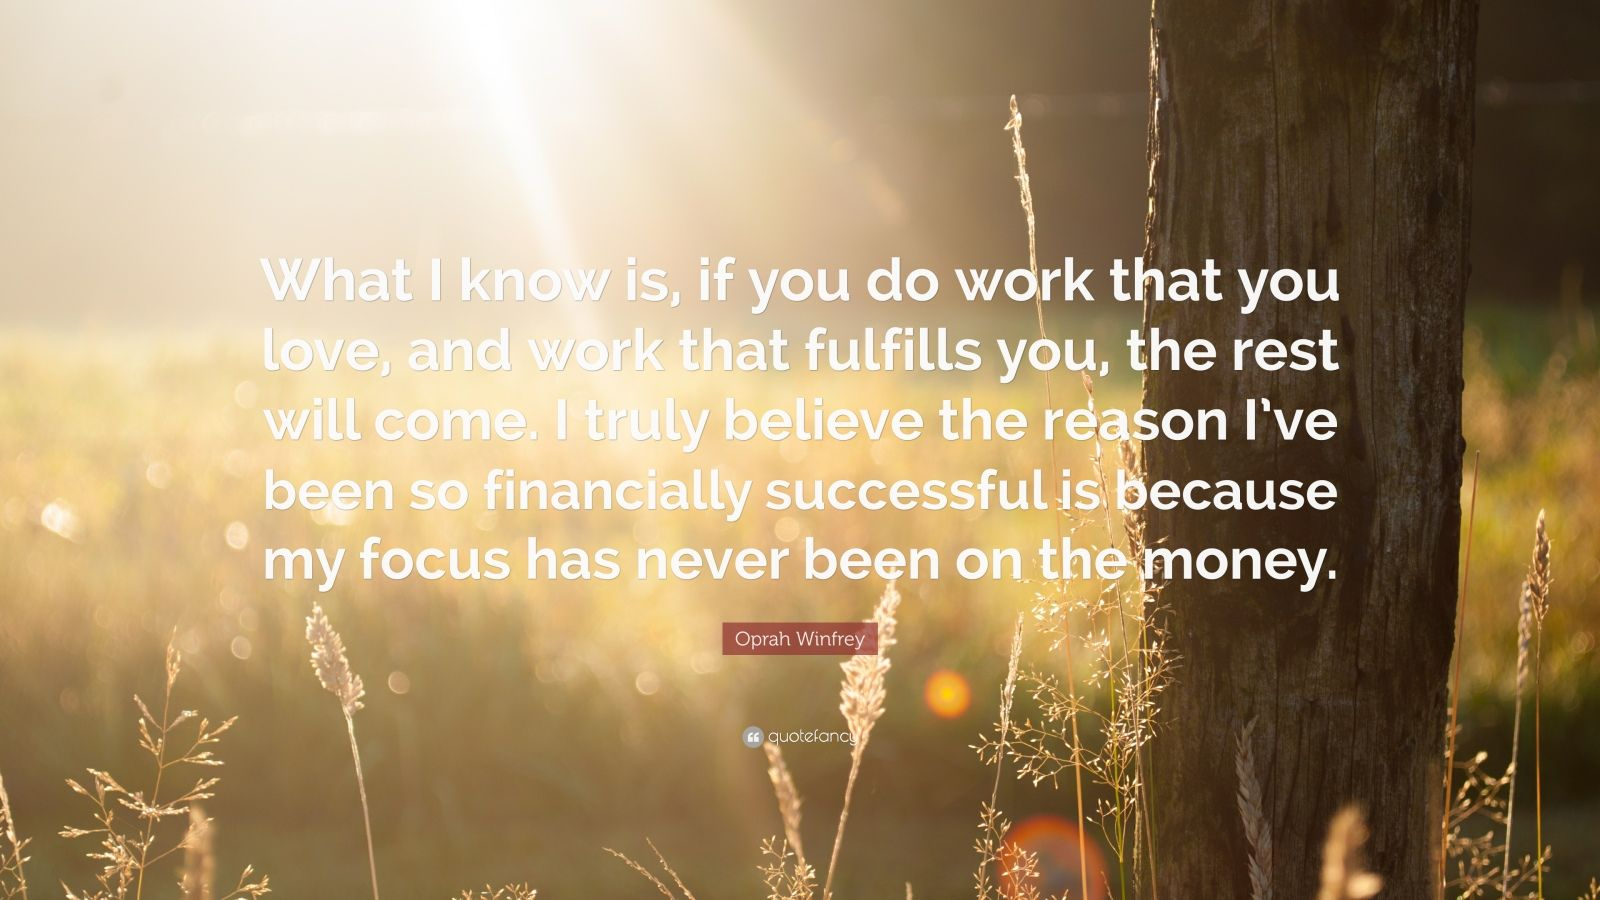 """Oprah Winfrey Quote: """"What I know is, if you do work that you love, and work that fulfills you, the rest will come. I truly believe the reason I've been so financially successful is because my focus has never been on the money."""""""